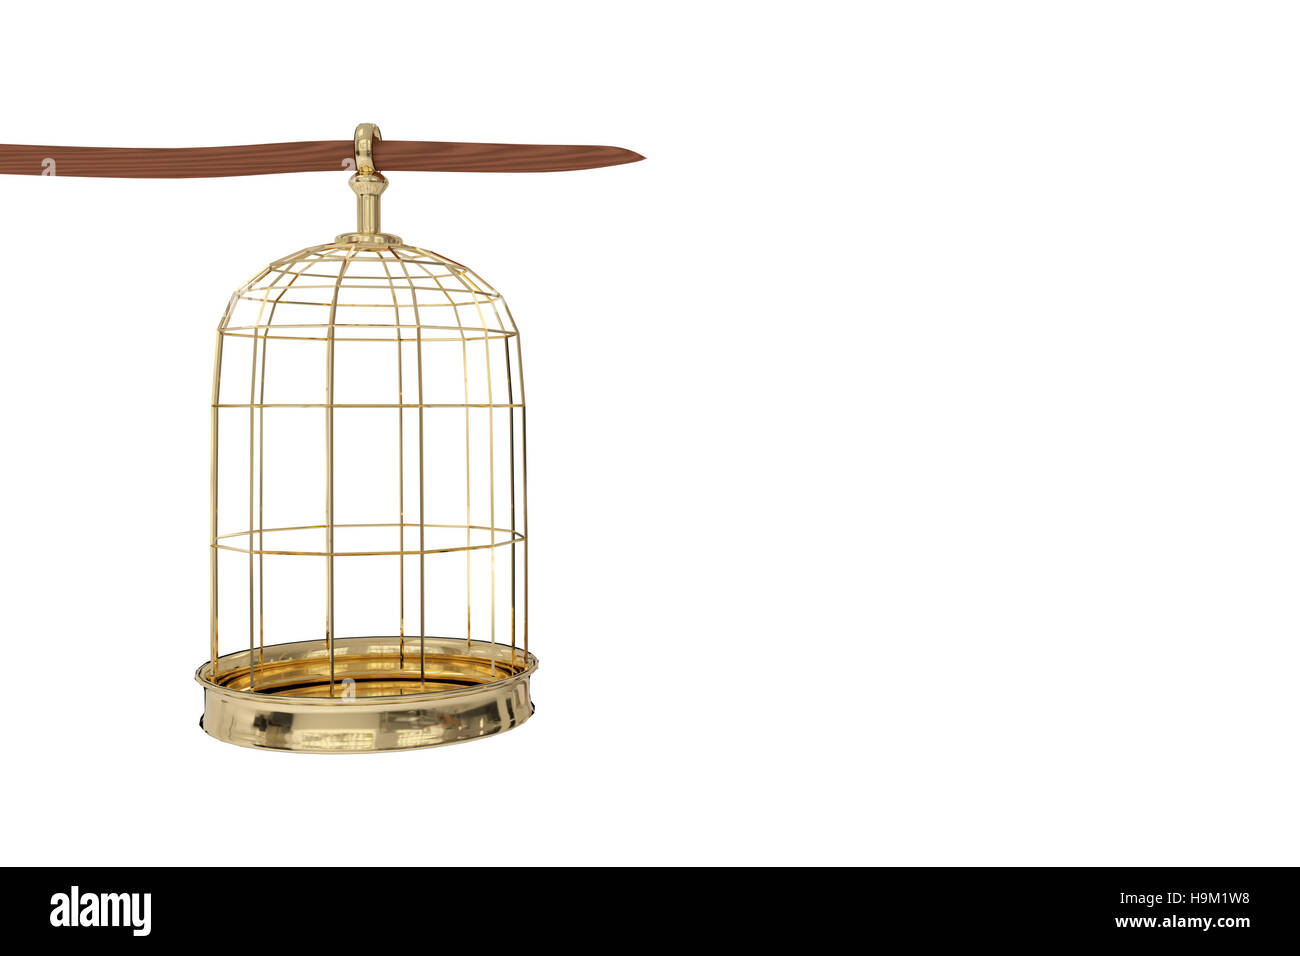 3D rendering of  a golden bird cage on white background, freedom concept - Stock Image